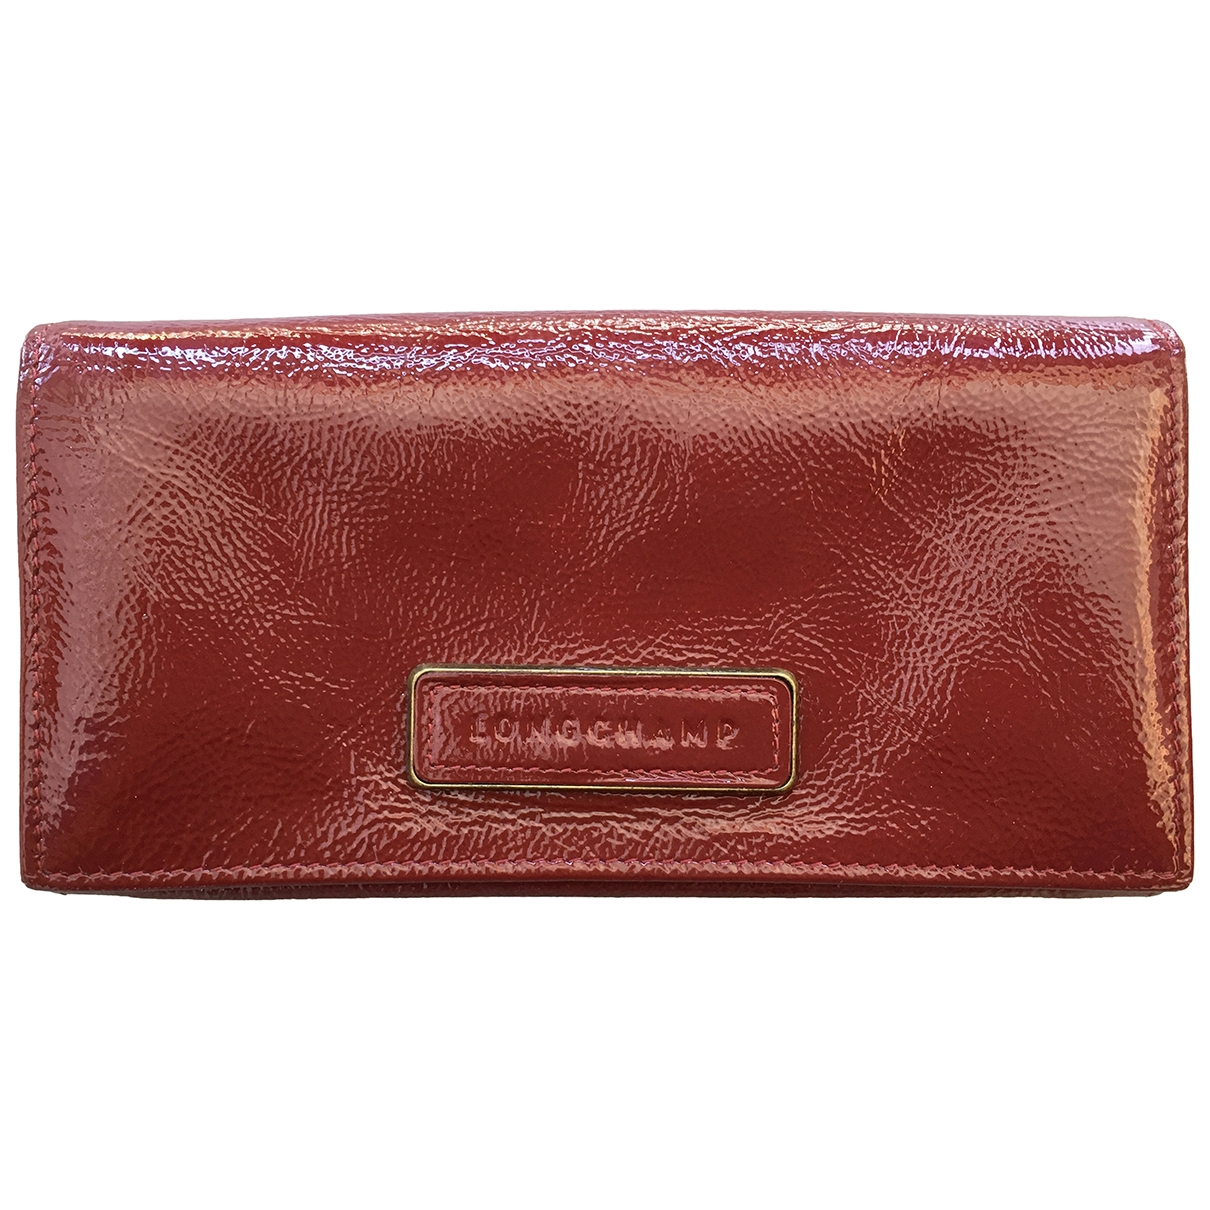 Longchamp \N Red Patent leather Purses, wallet & cases for Women \N